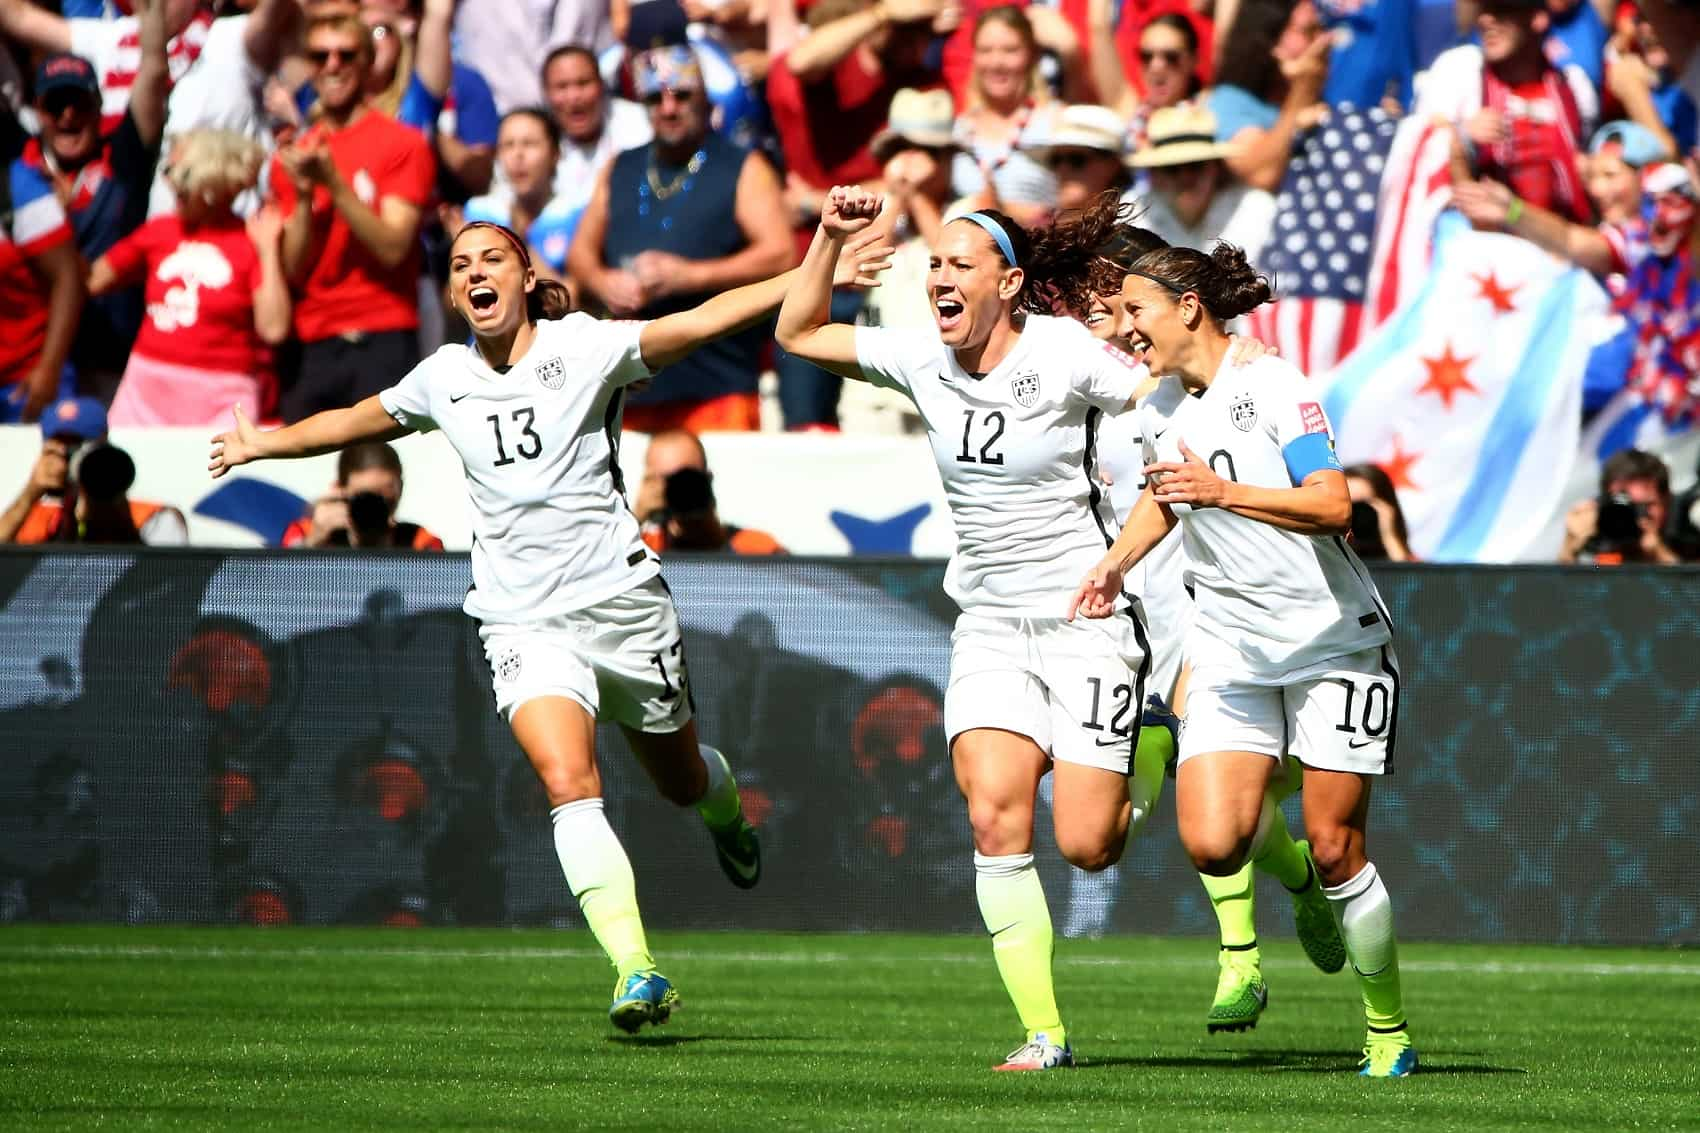 cce2de4828c Lauren Holiday  12 and Carli Lloyd  10 of the United States celebrate with  teammates